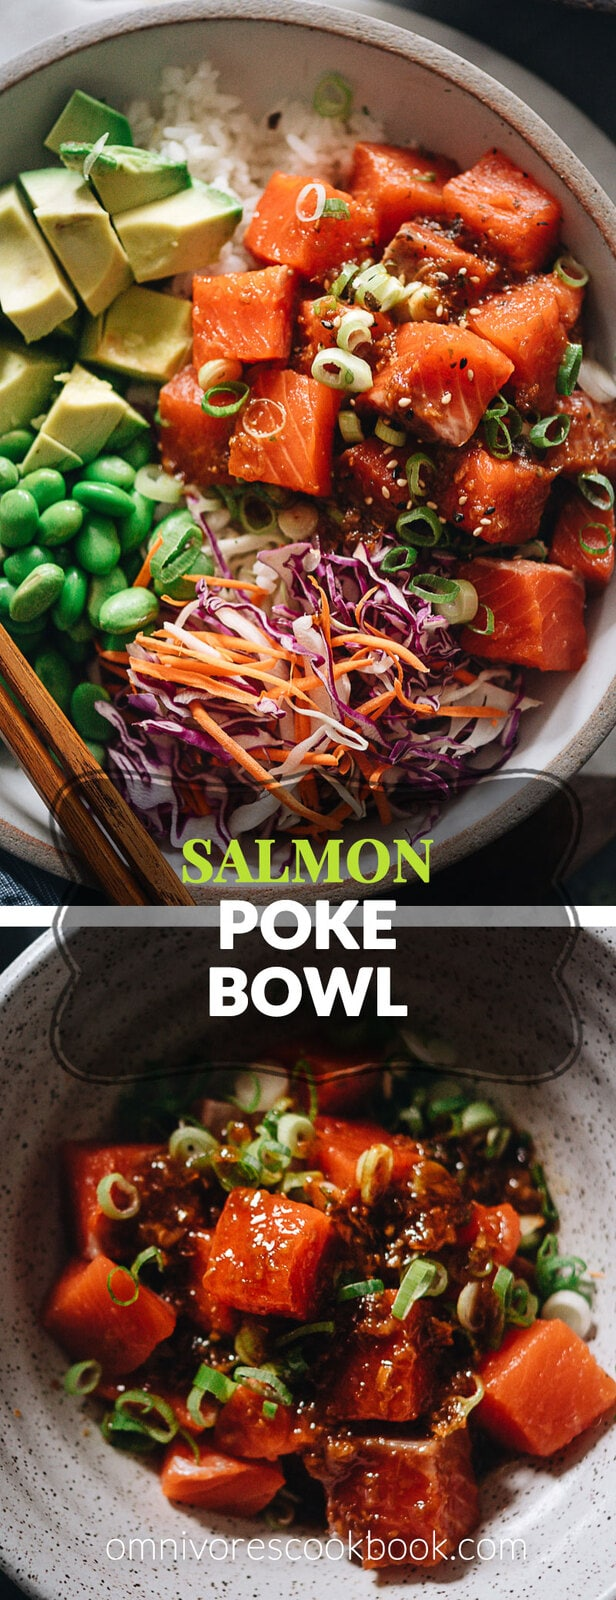 Salmon poke bowl - a perfect one-bowl meal that's easy to make and packed with nutrition. The recipe uses an extra aromatic sauce that has the right balance of savory, sour, sweet, and spicy. The dish is quick enough to make for a weekday dinner and fancy enough to serve at your weekend dinner party. {Gluten-free adaptable}